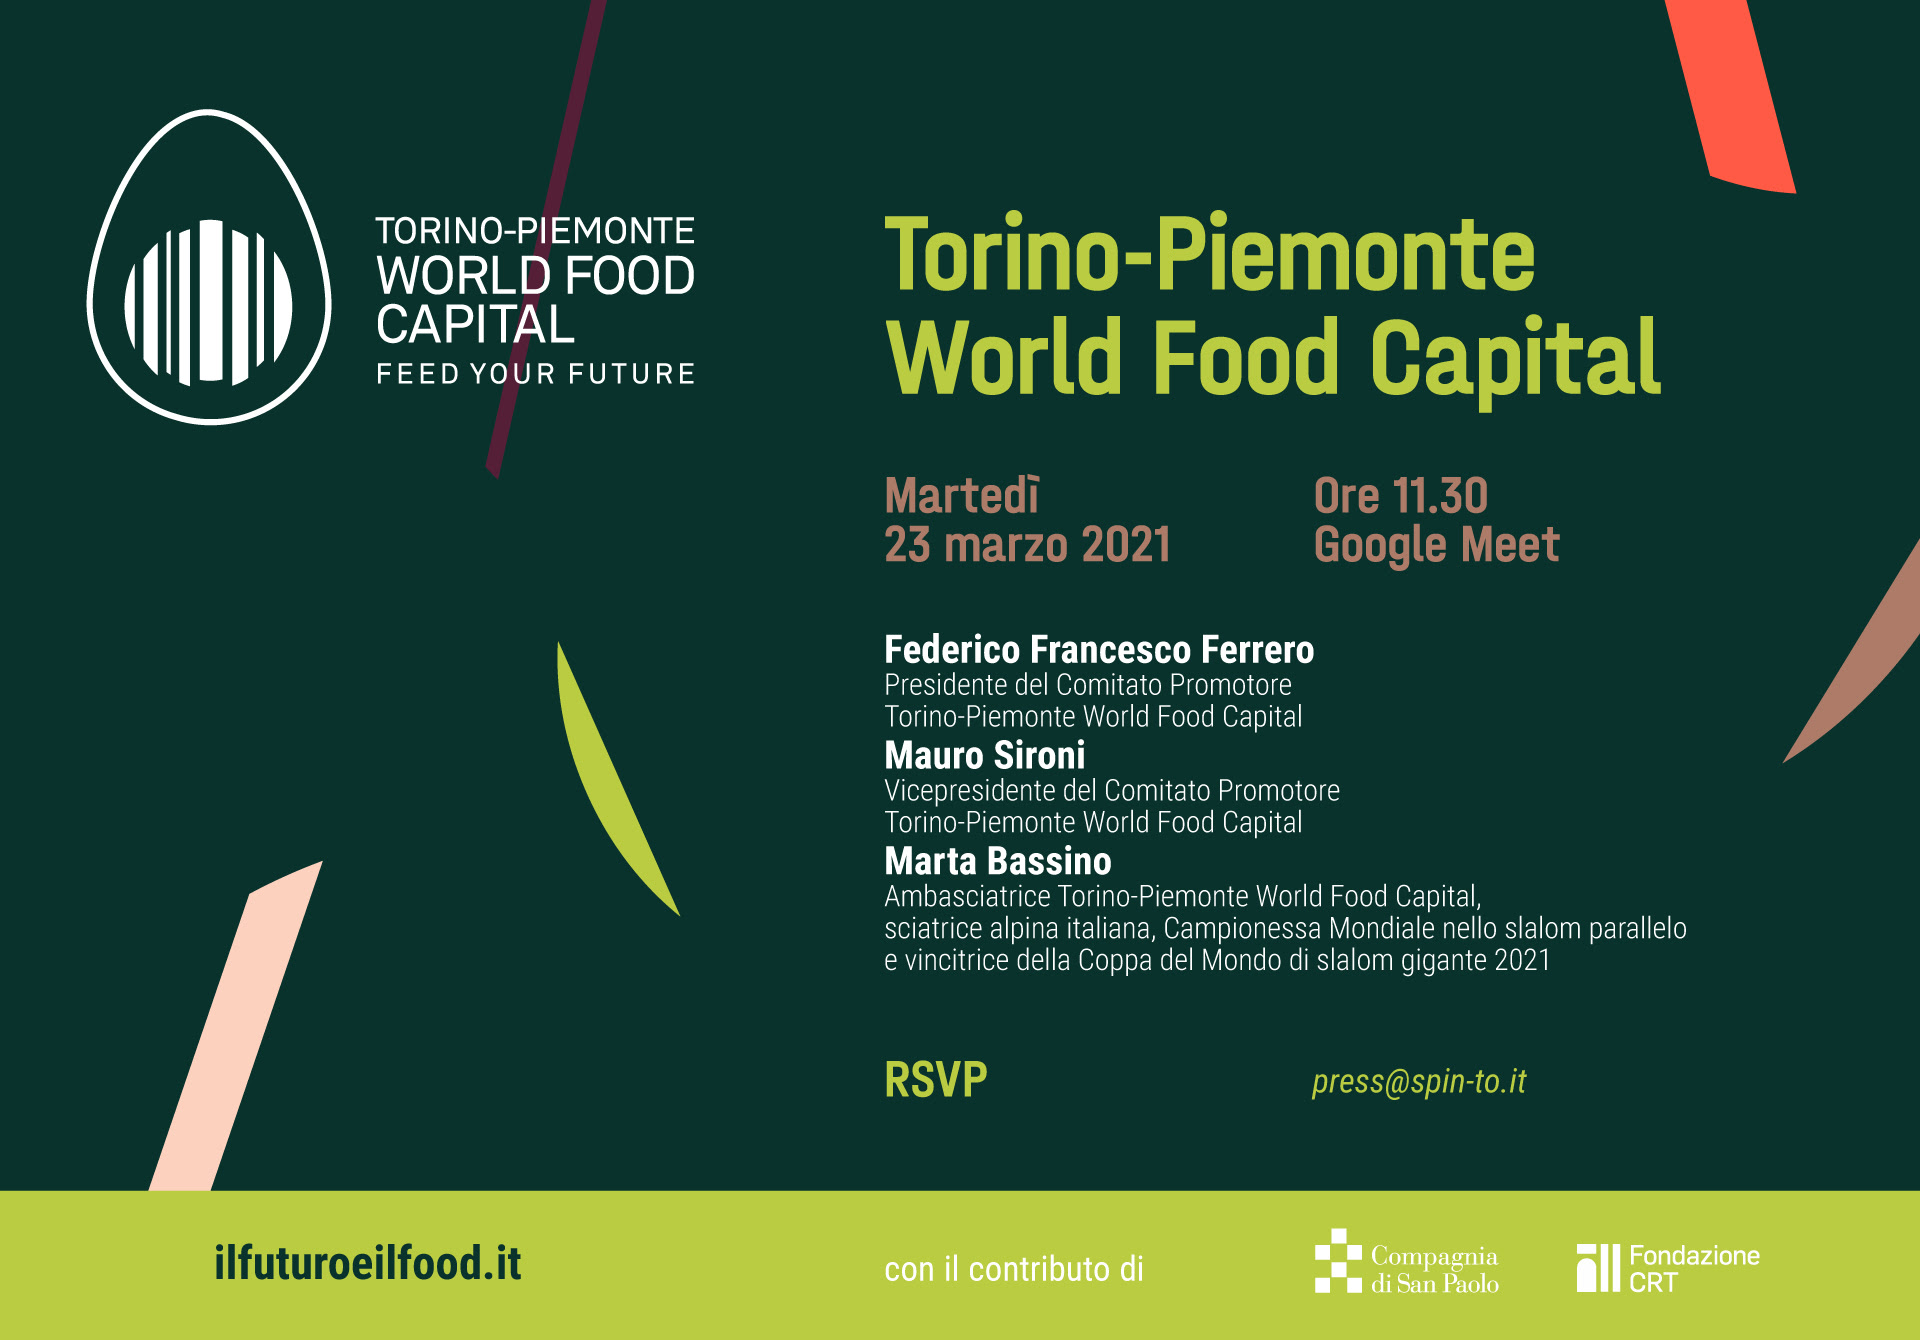 Torino-Piemonte World Food Capital